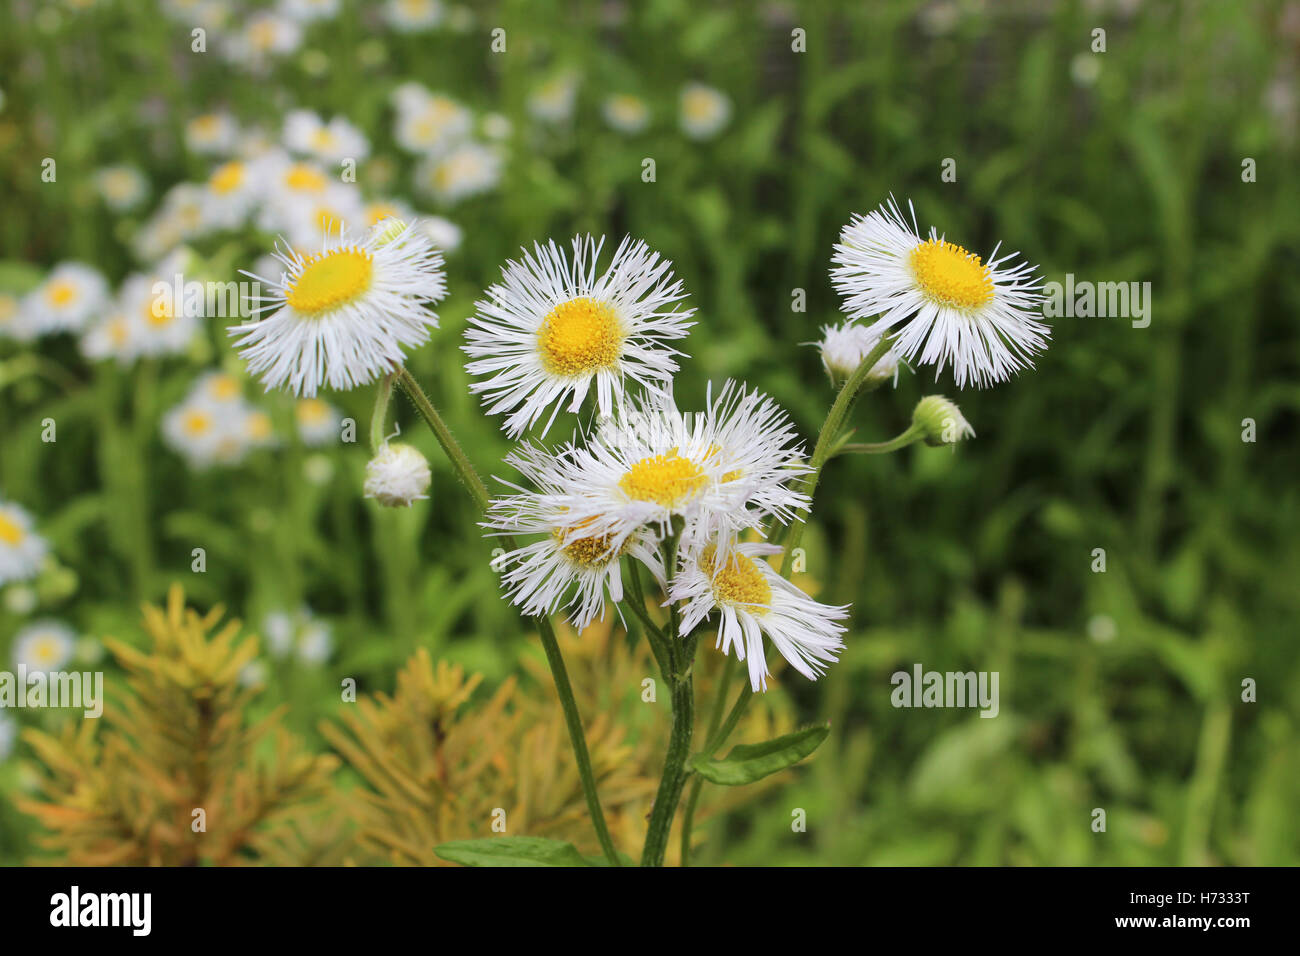 Flower with white petals and yellow center stock photos flower aster flower is white petals with the vivid yellow center in nara japan stock mightylinksfo